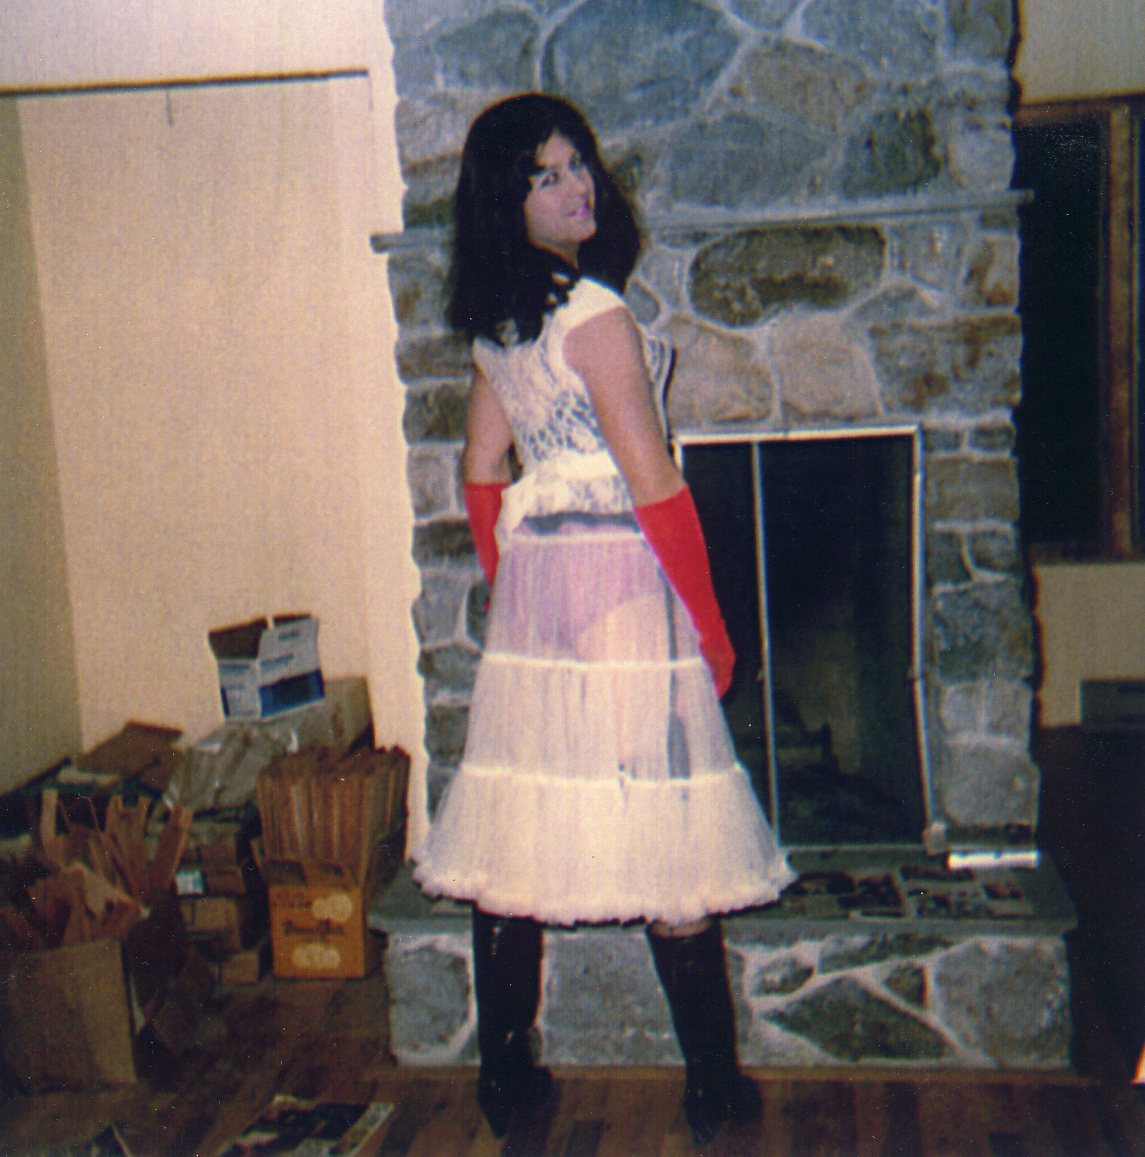 Halloween-1988-in-full-drag